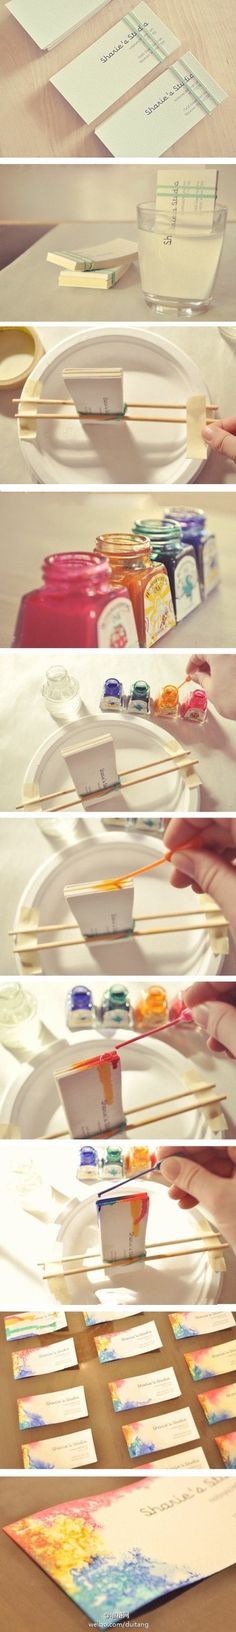 Brilliant idea! Not sure if you'd have to add water to merge the inks though...